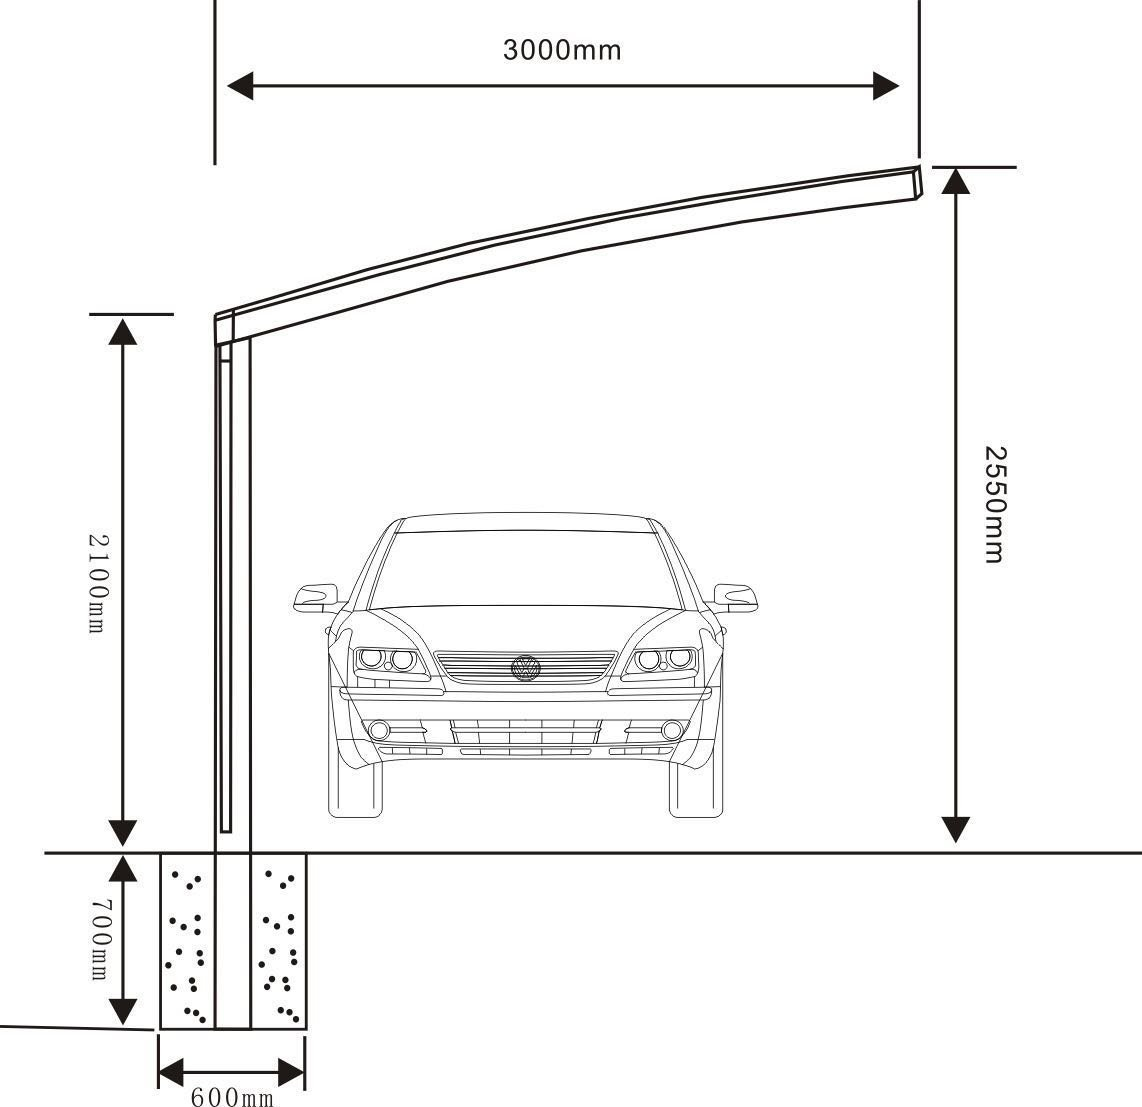 10' x 20' Metal Carport Tent Shelter Attached Carport Metal Aluminum With Gutter And Polycarbonate Panel, Metal RV Carports for Car, Yacht And Copter, Also Is Luxury Patio Cover by ClearYup (Image #4)